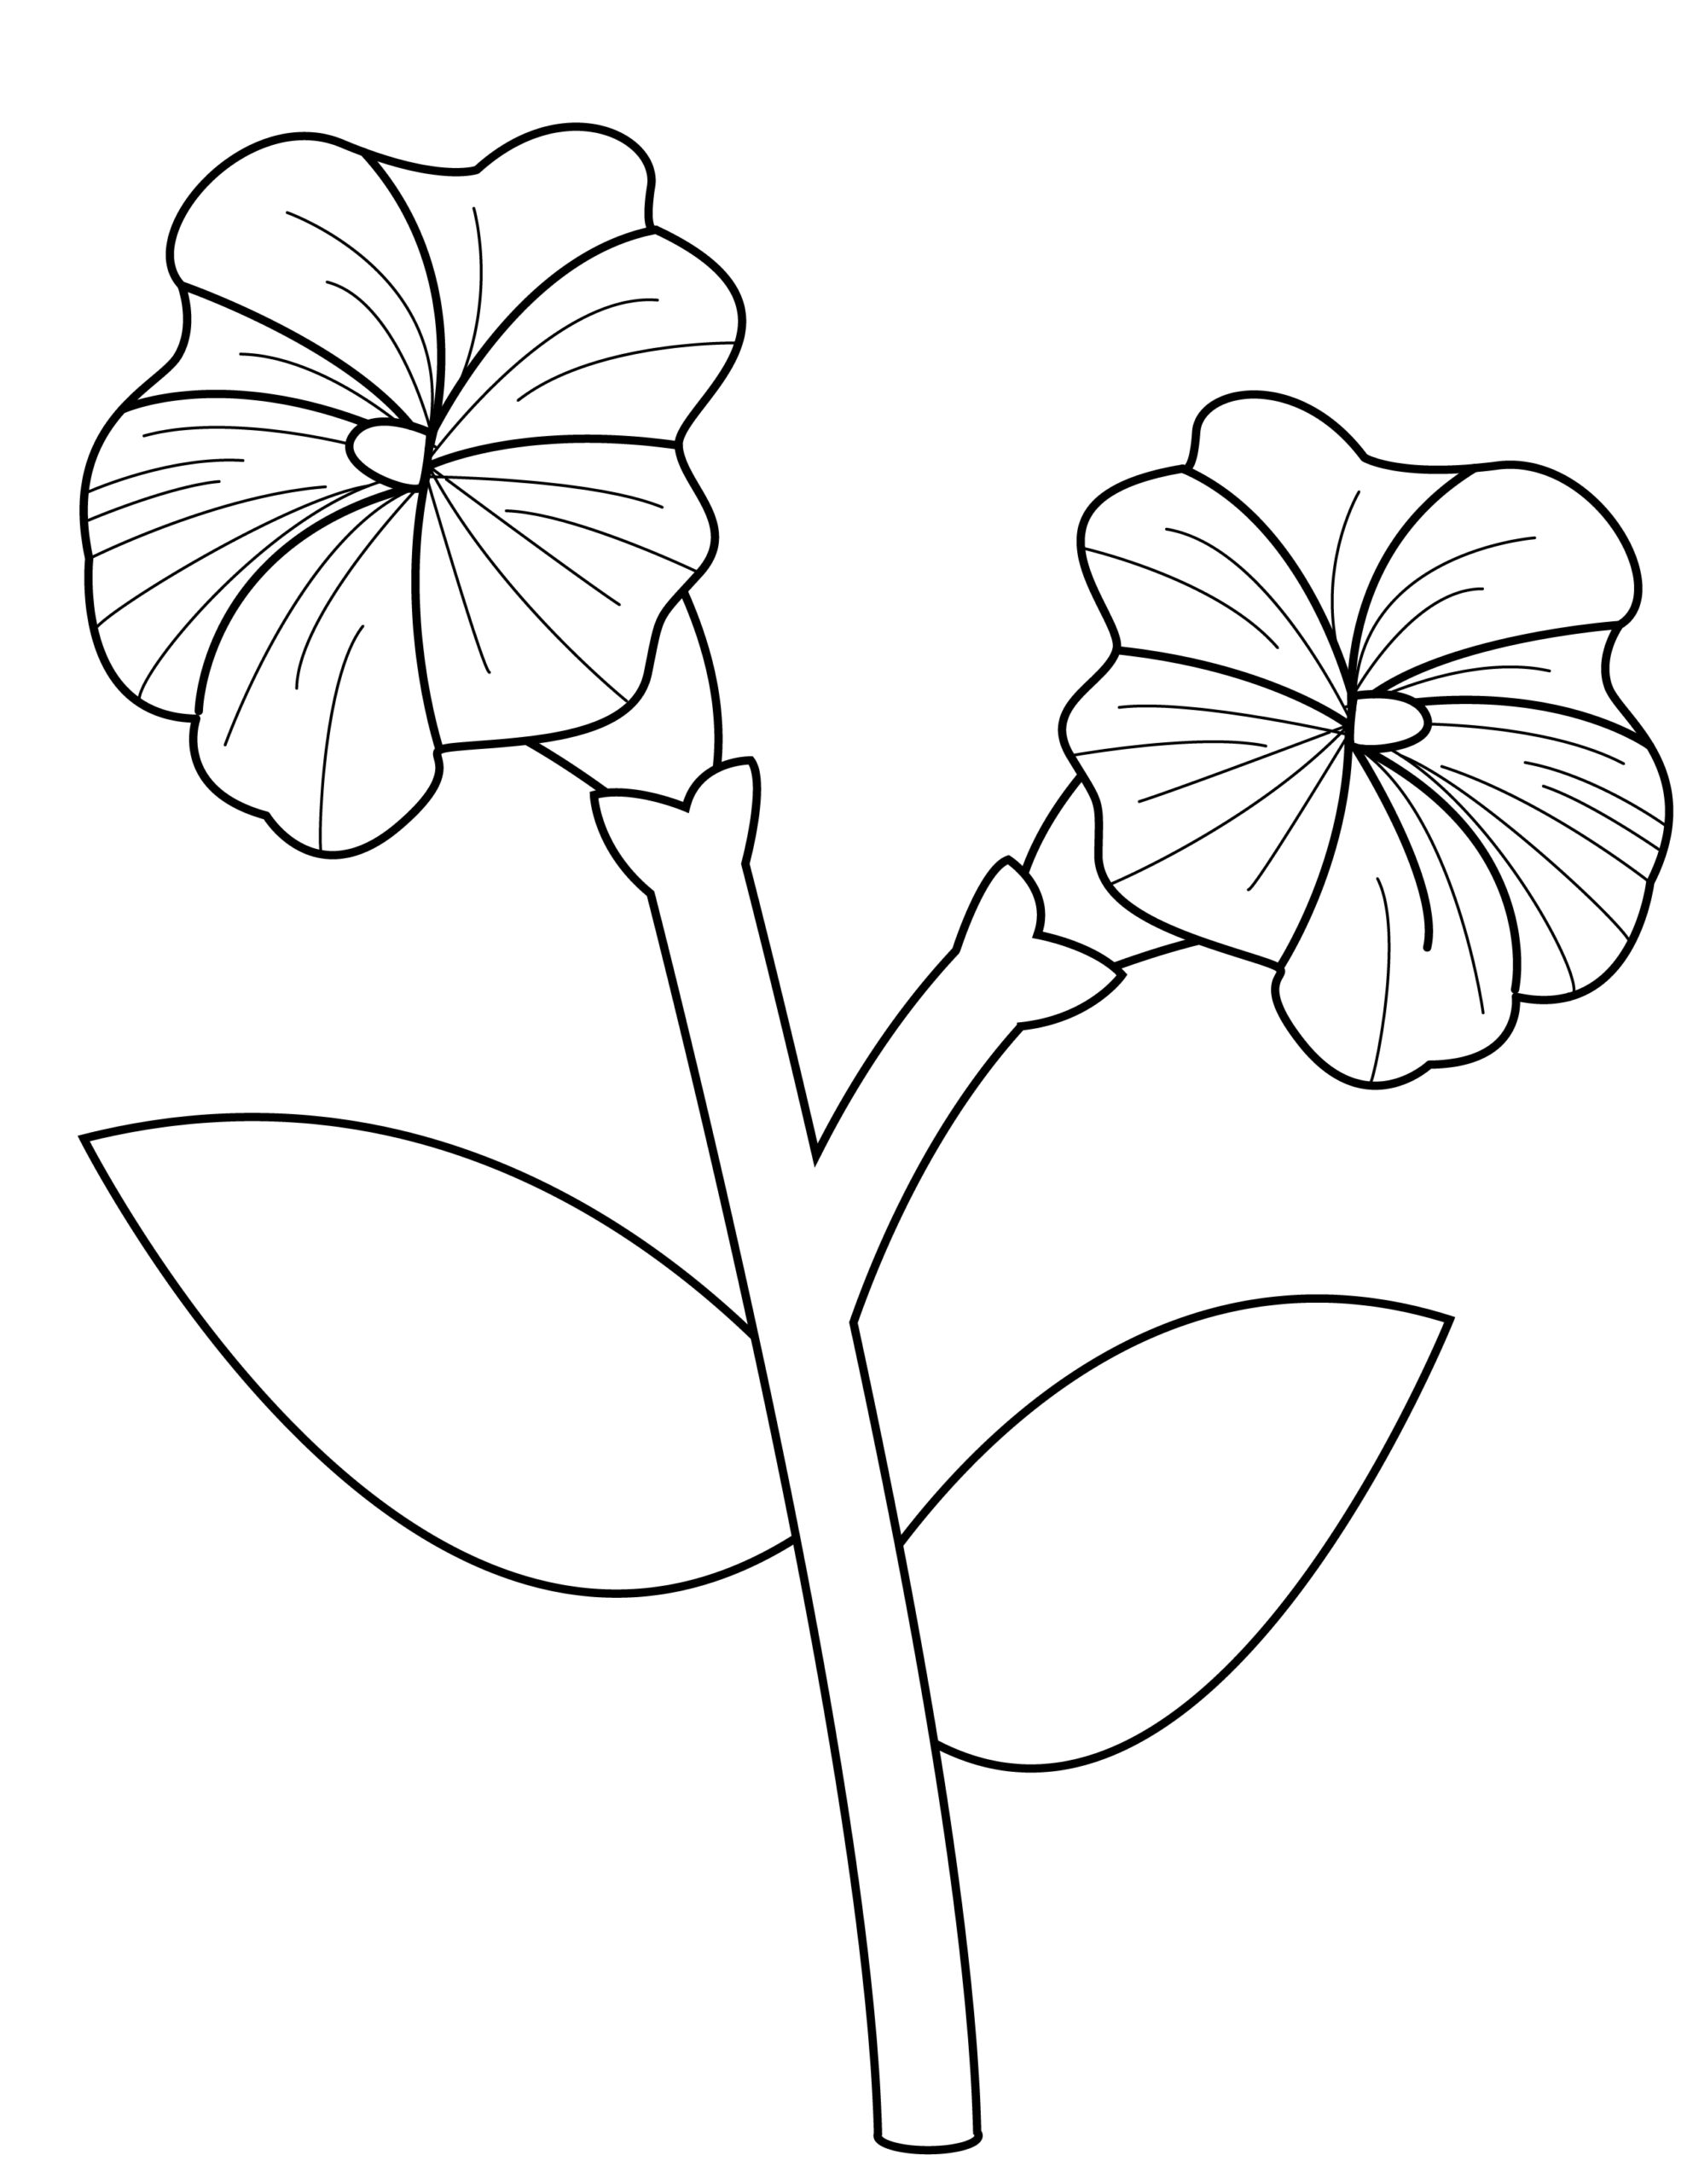 Printable petunia template for summer template crafts for kids, preschoolers and toddlers